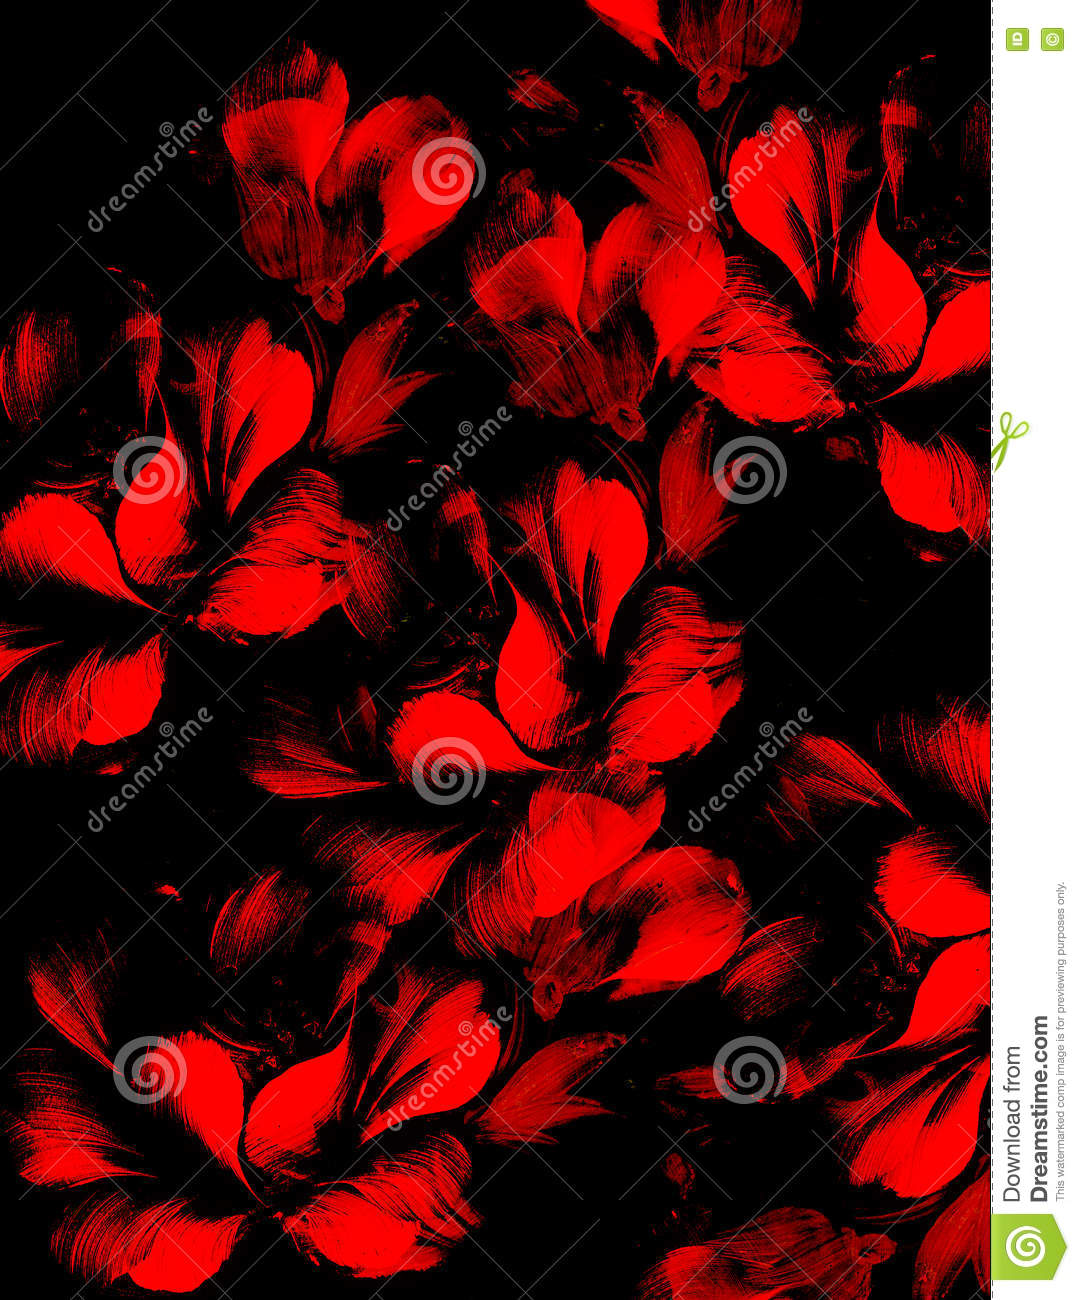 Red Flower On Black Background Painting And Computer Collage Stock Illustration Illustration Of Floral Light 73823583